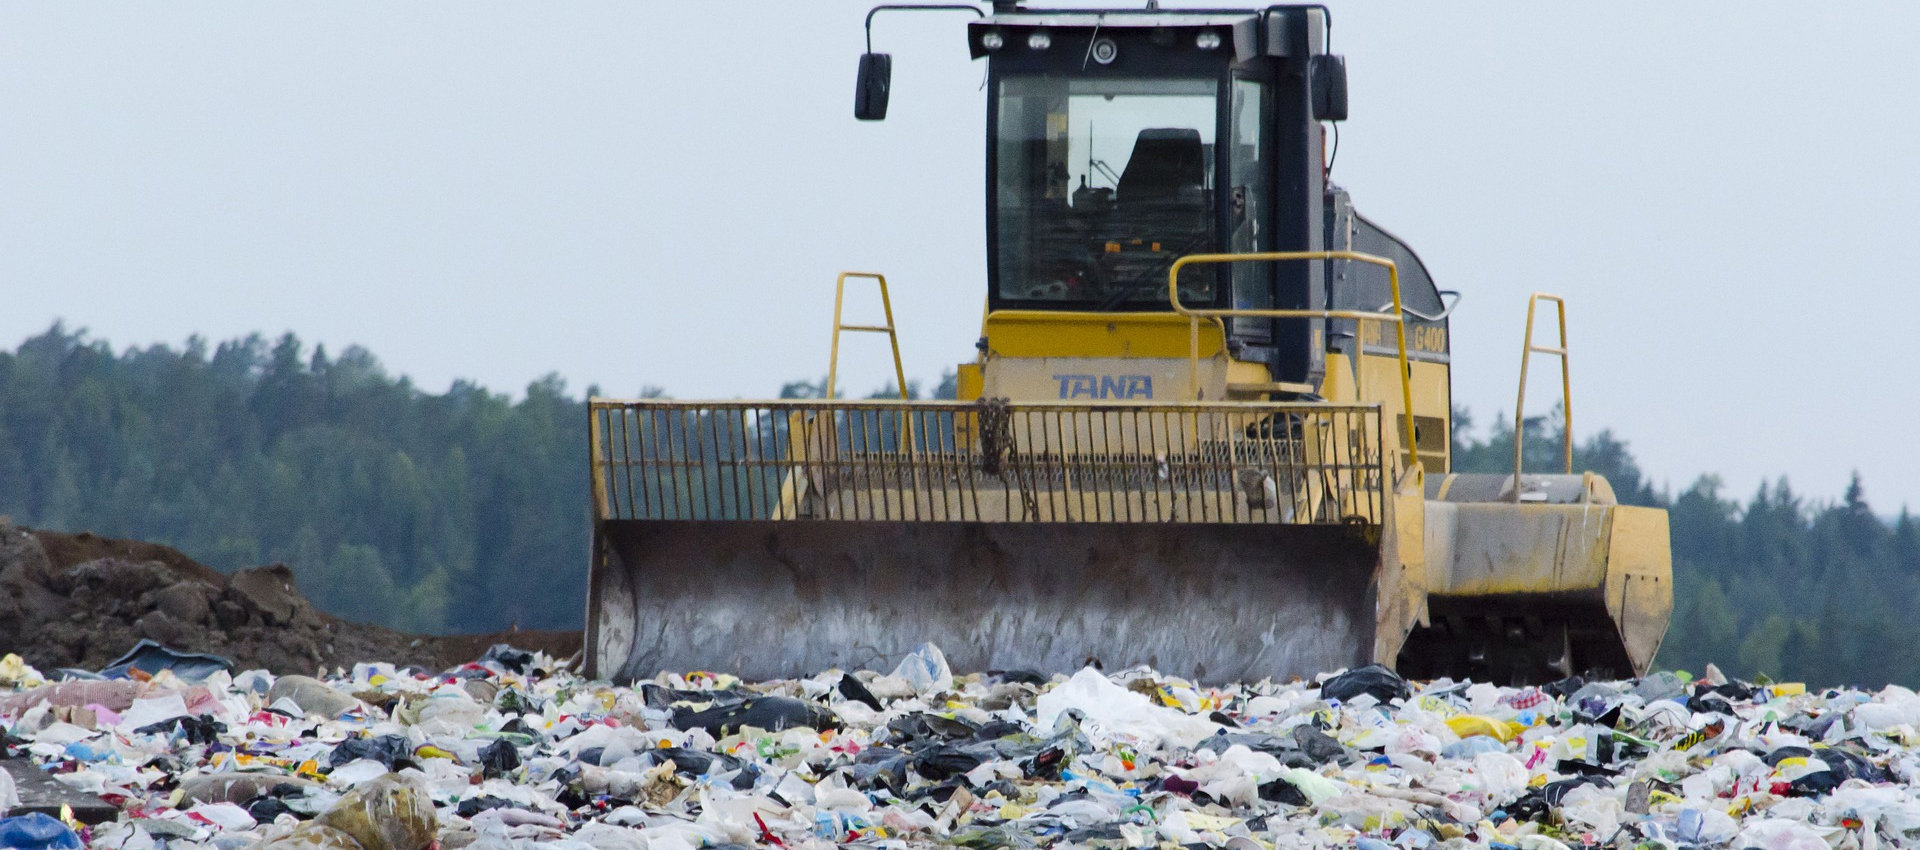 U.S. Environmental Protection Agency Finalizes Landfill Emissions Rule